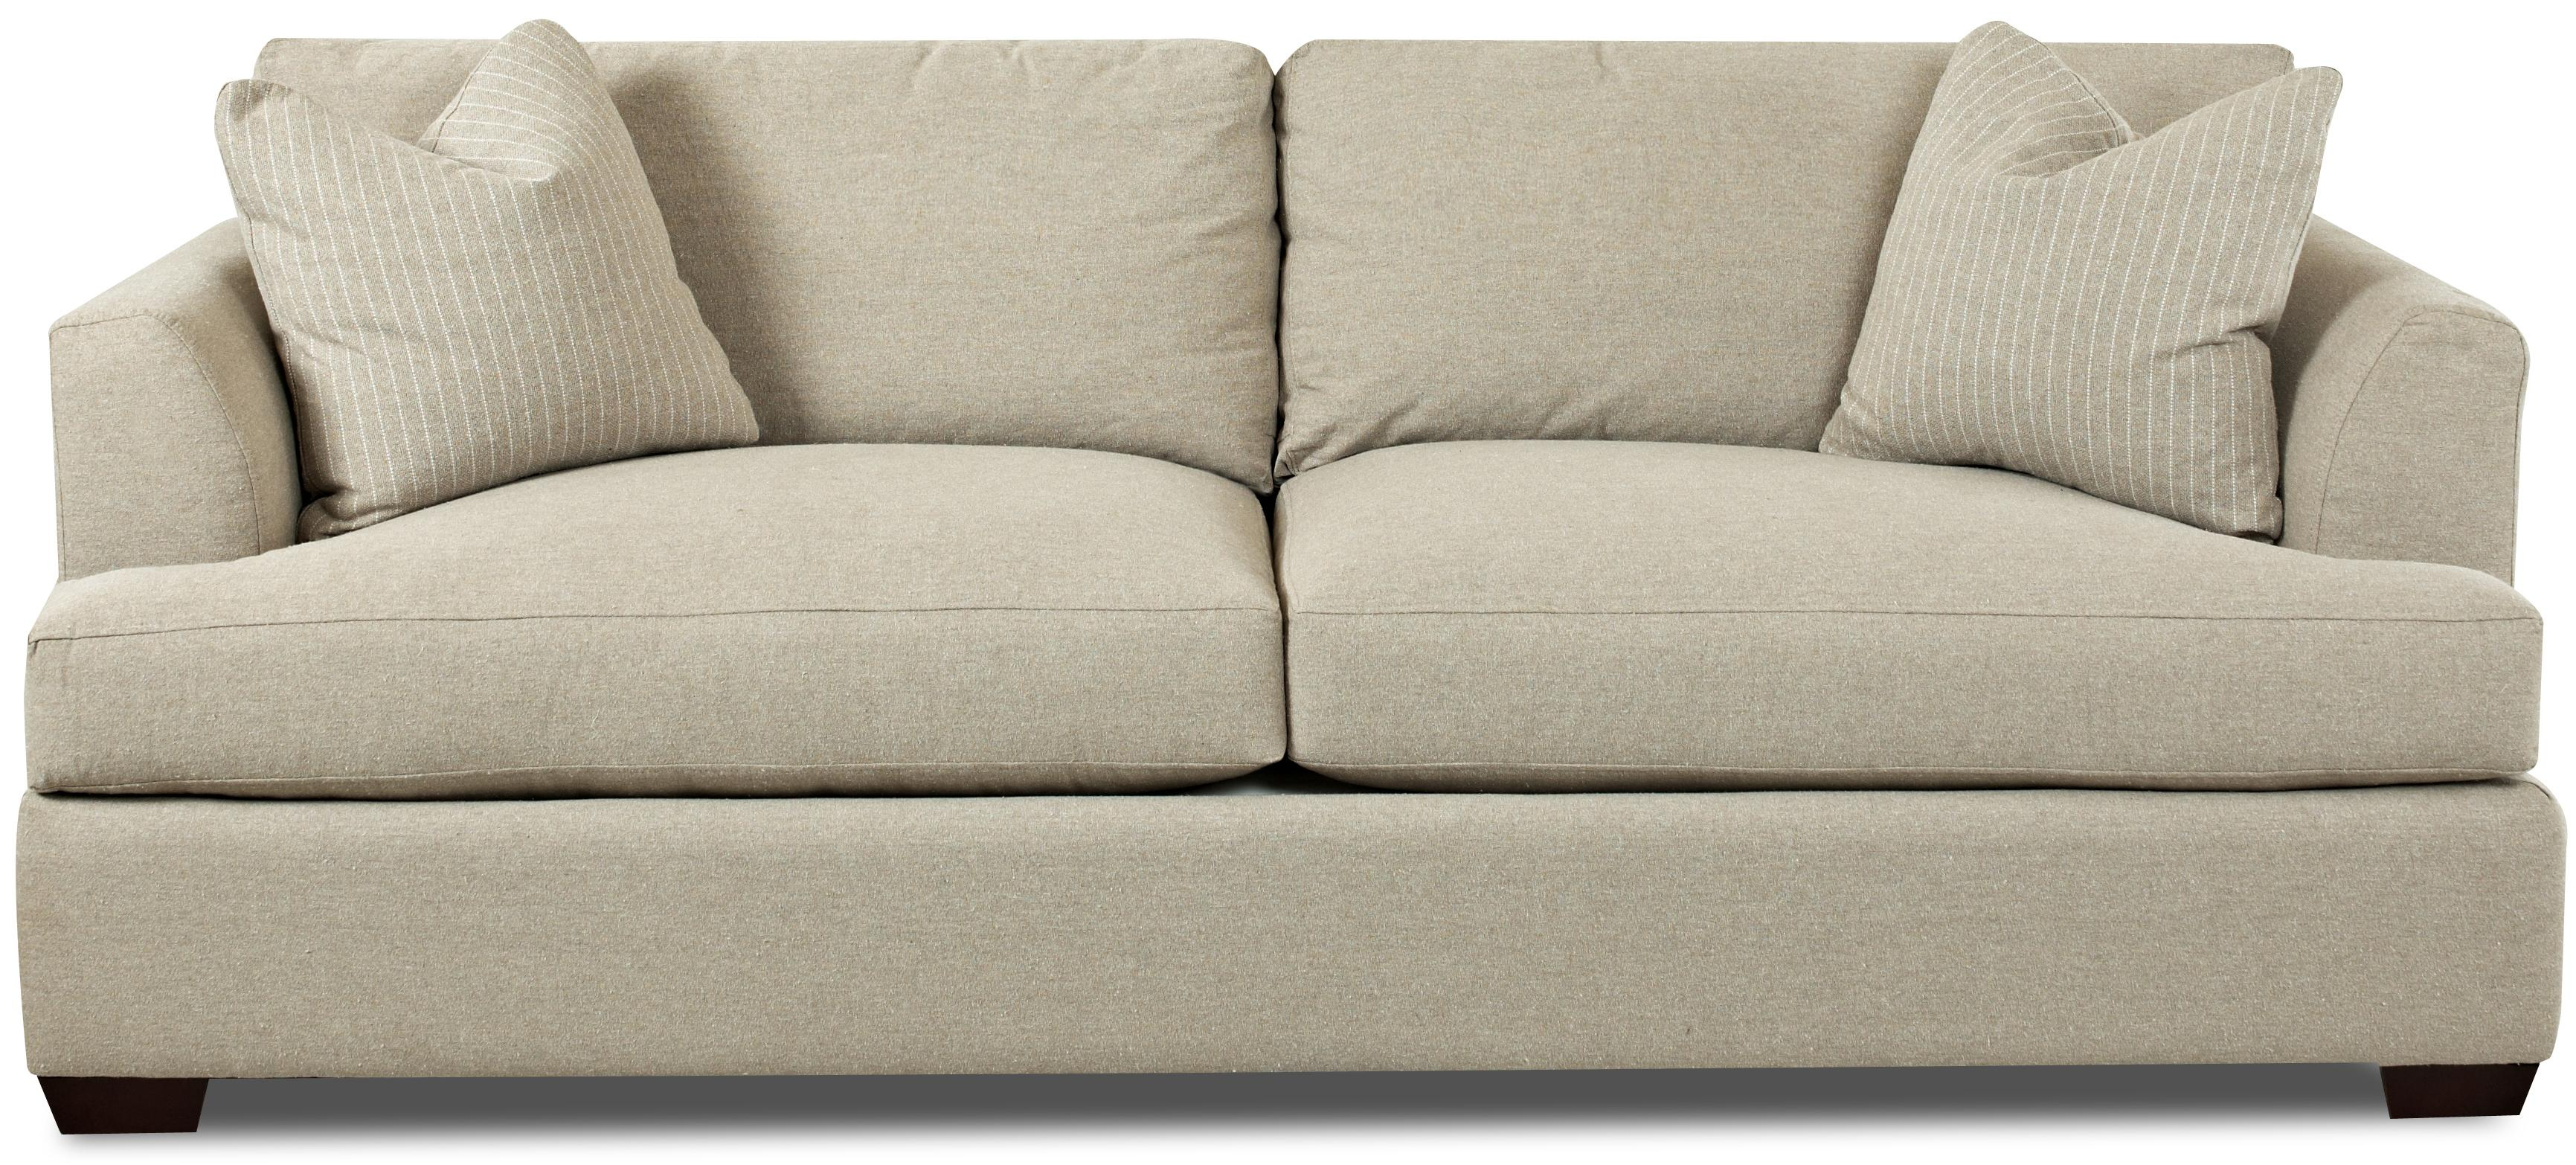 Contemporary Sofa with Flared Track Arms by Klaussner